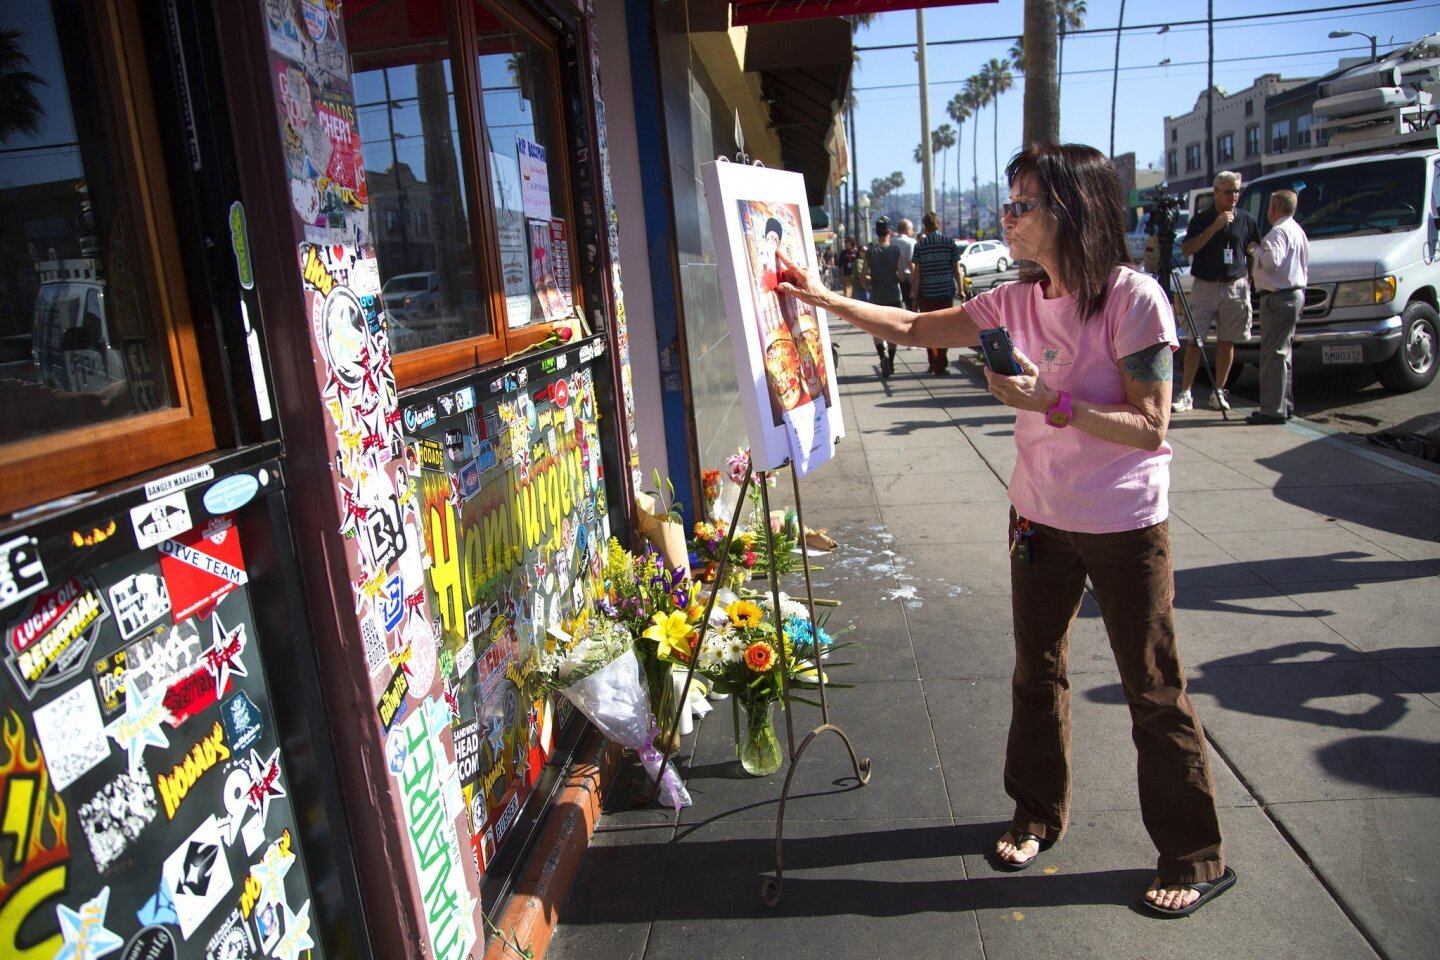 Lori Deason from Ocean Beach stopped by the well known Hodad's Burger eatery in Ocean Beach to pay her respect to Mike Hardin.  Throughout the day mourners gathered and left items in front of the Ocean Beach eatery in a makeshift memorial.